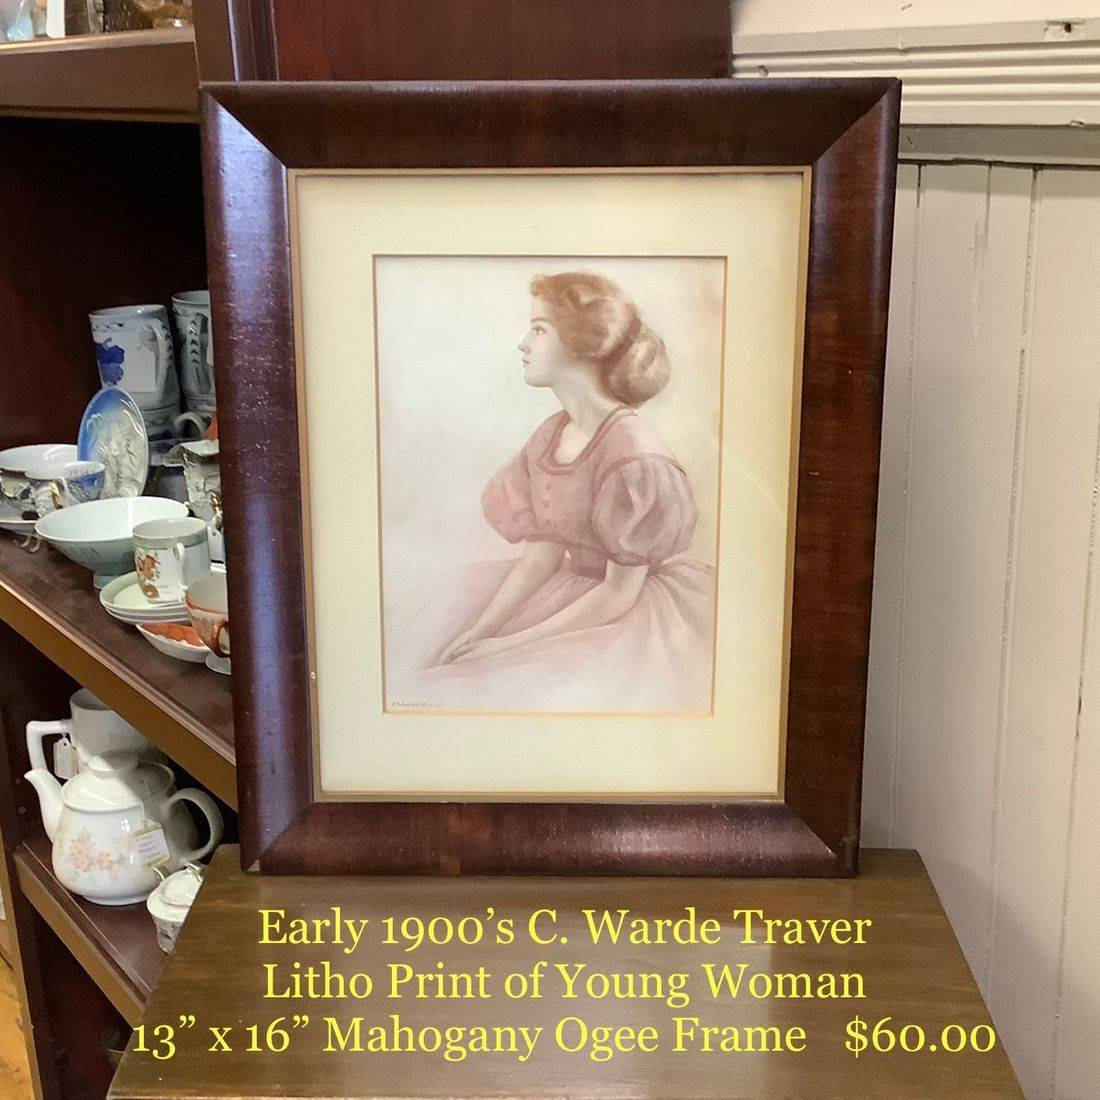 C. Warde Traver Early 1900's Litho Print of Young Woman